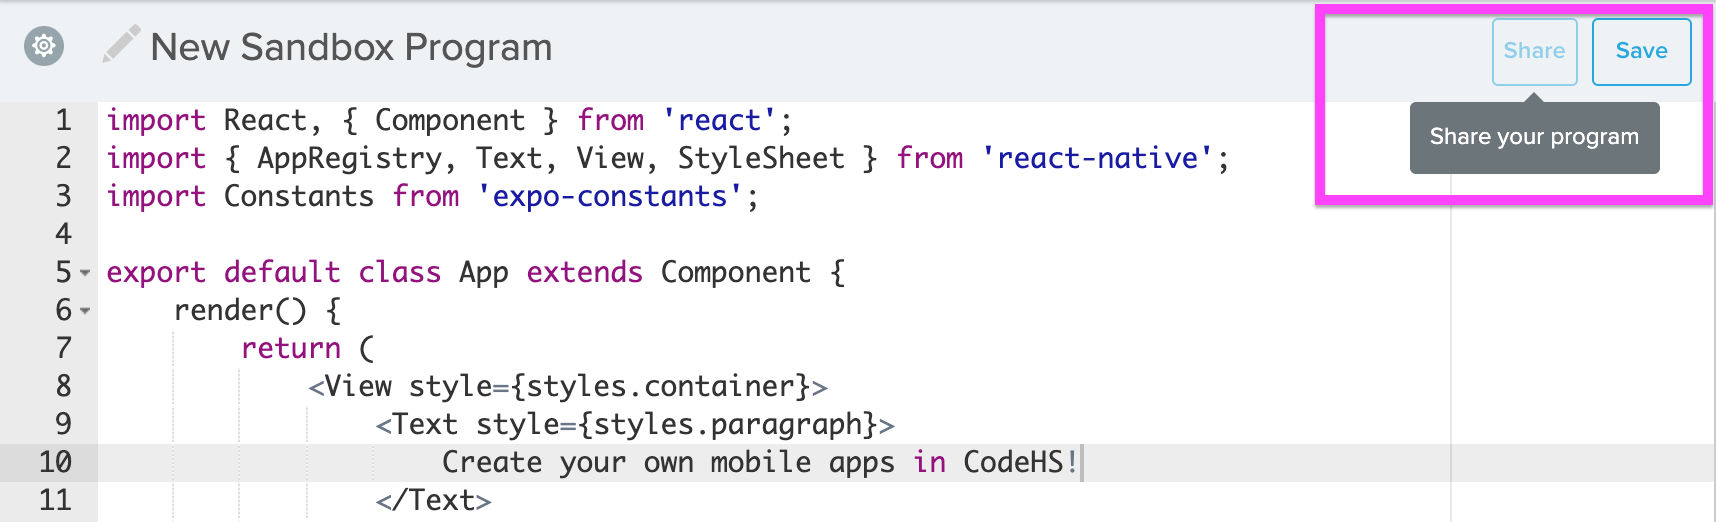 Screenshot of code editor with Share highlighted